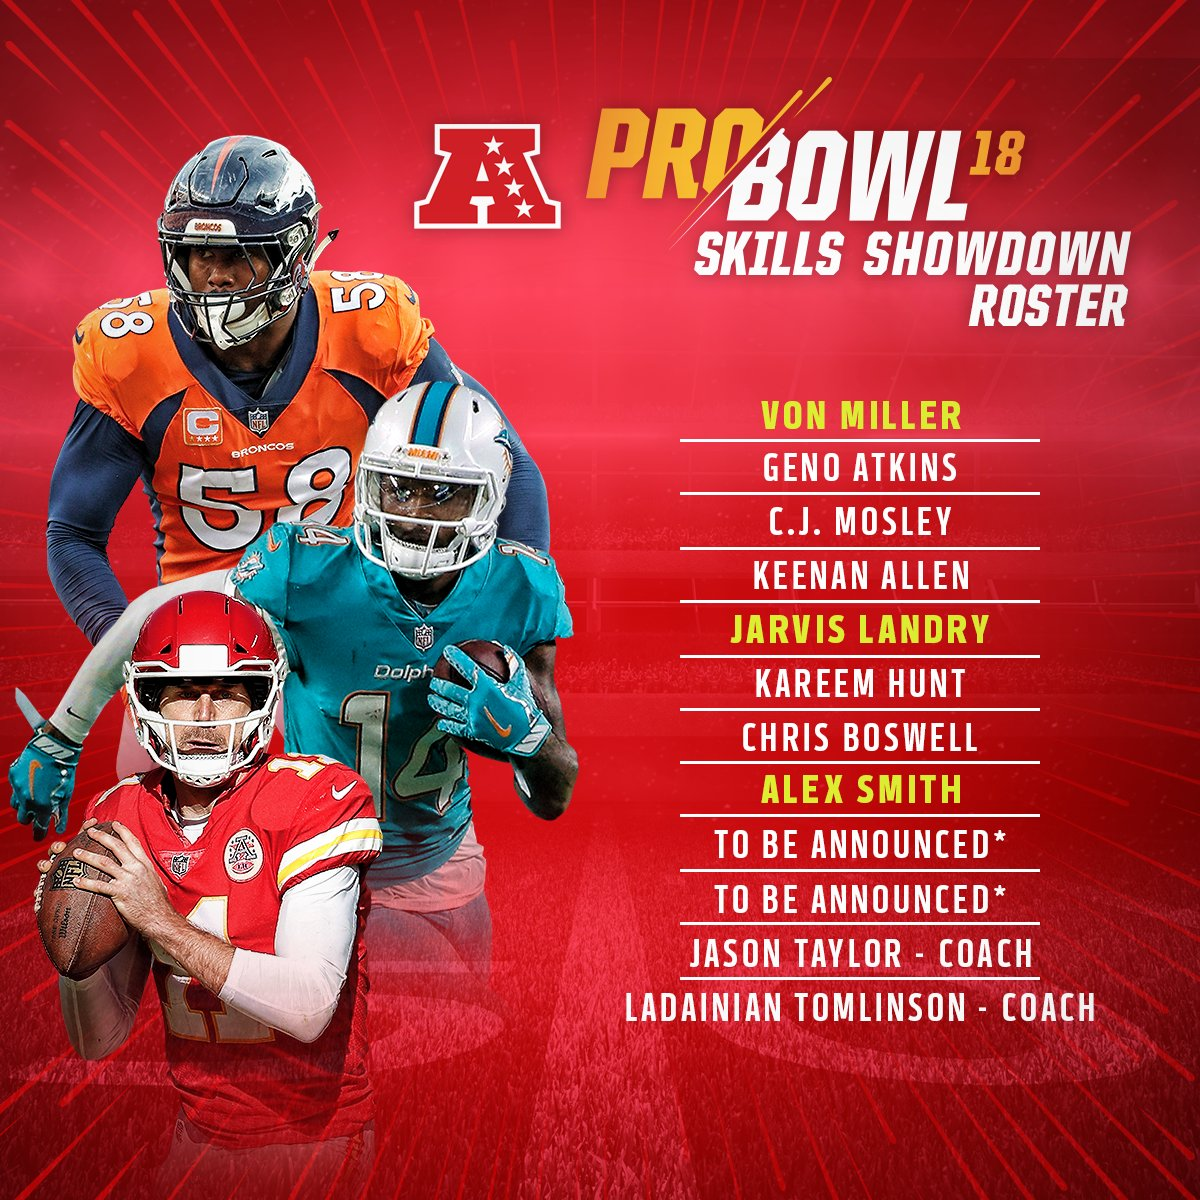 Come check out some of the game's biggest stars at the #ProBowlSkills Showdown!  Thursday 1/25 on @ESPN (9pm ET)!